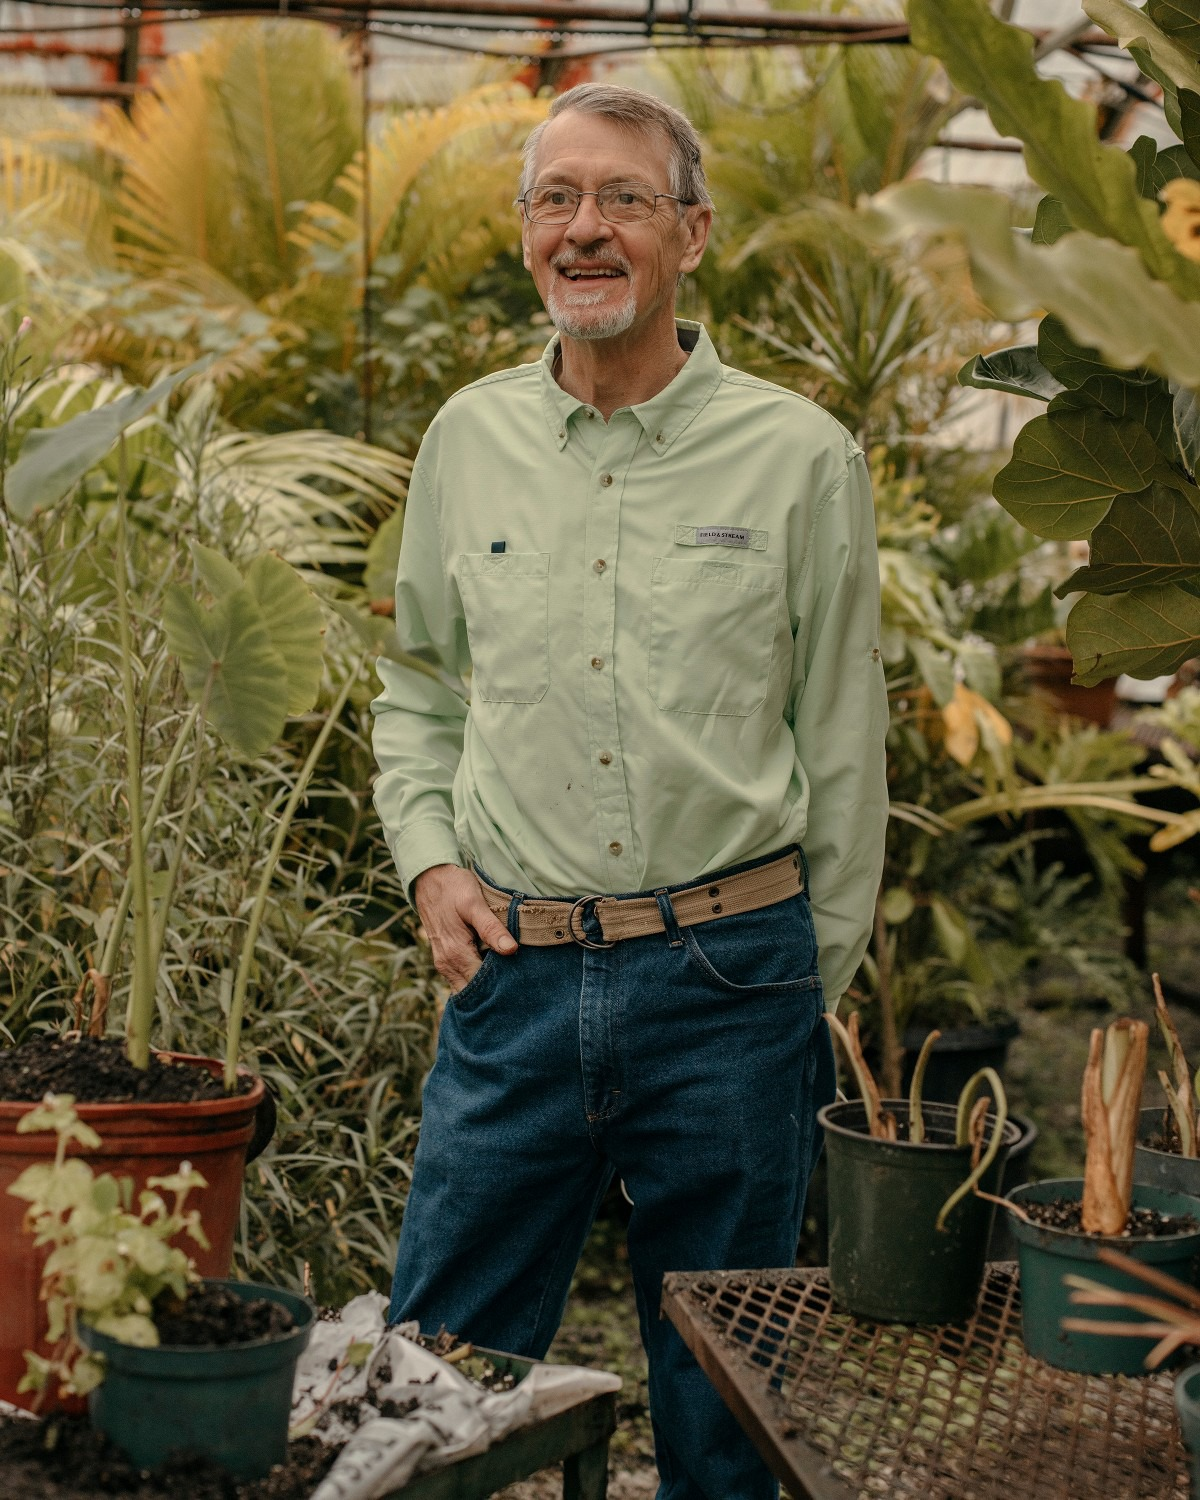 <strong>Tom Rieman, a Master Gardener, stands in one of the city&rsquo;s greenhouses on MLGW&rsquo;s property in Overton Park.</strong> (Houston Cofield/Special To The Daily Memphian)